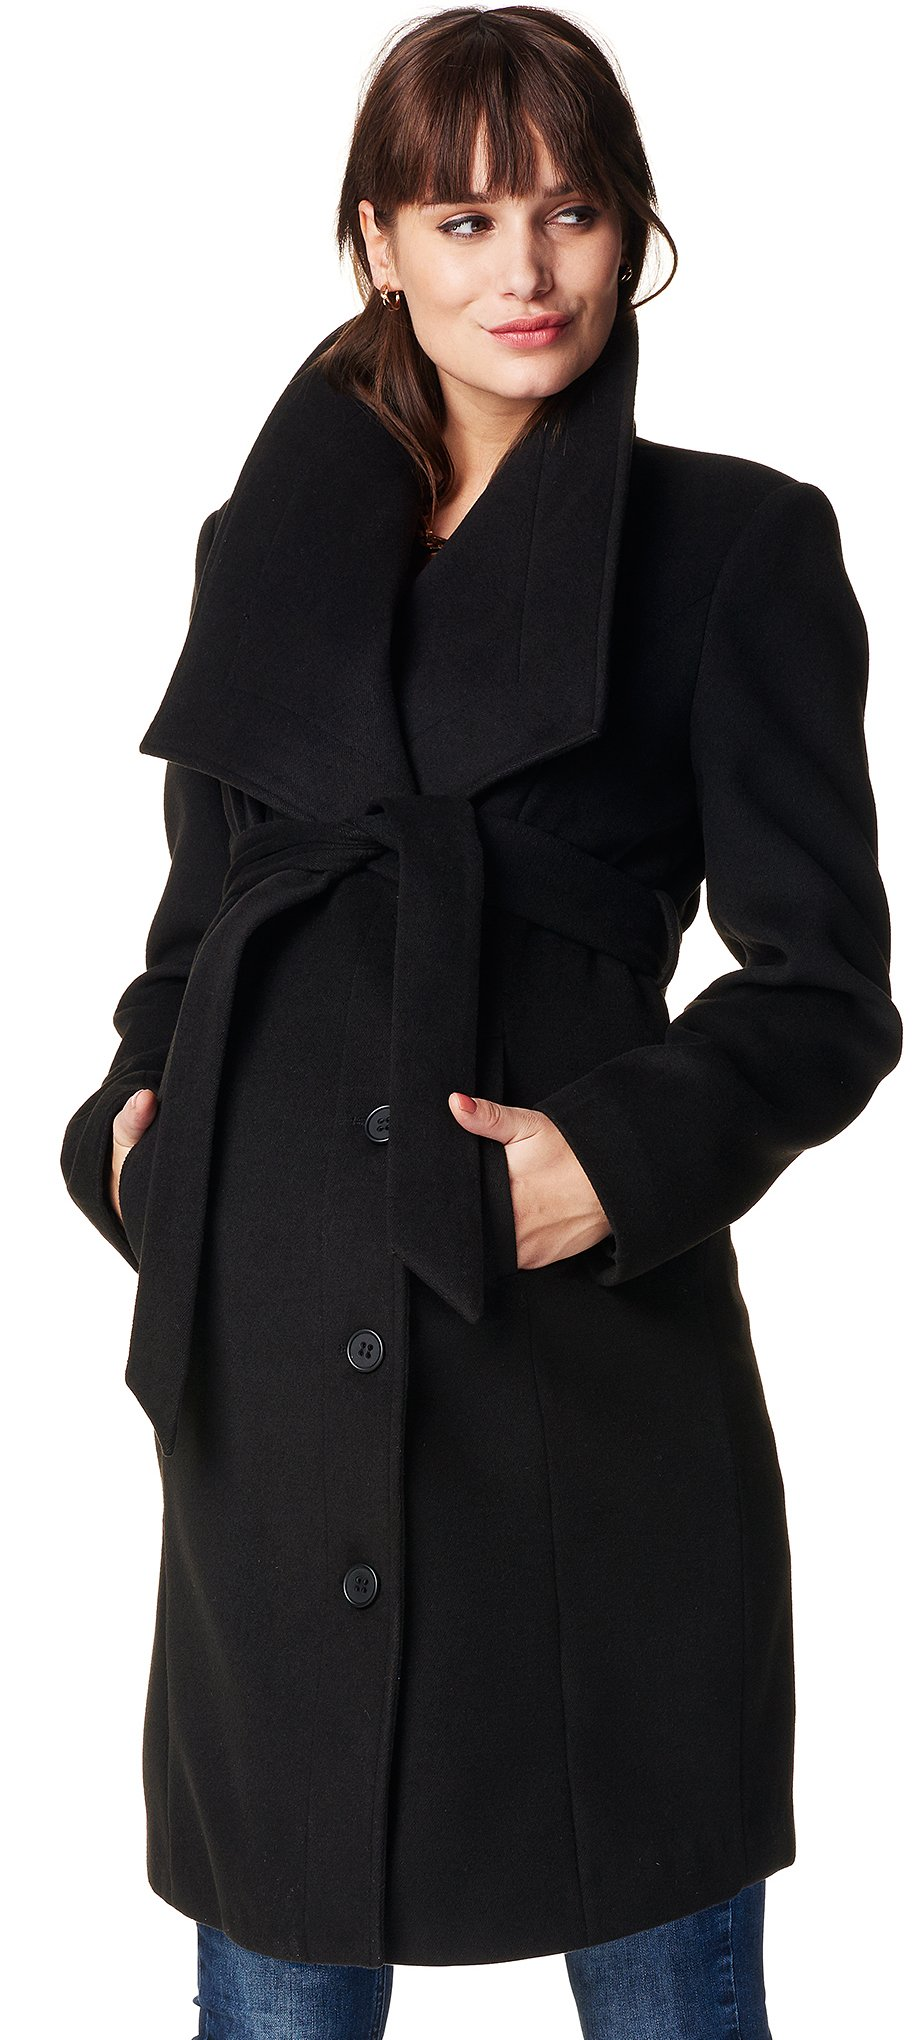 Noppies Women's Maternity Jacket Silje, Black, L by Noppies